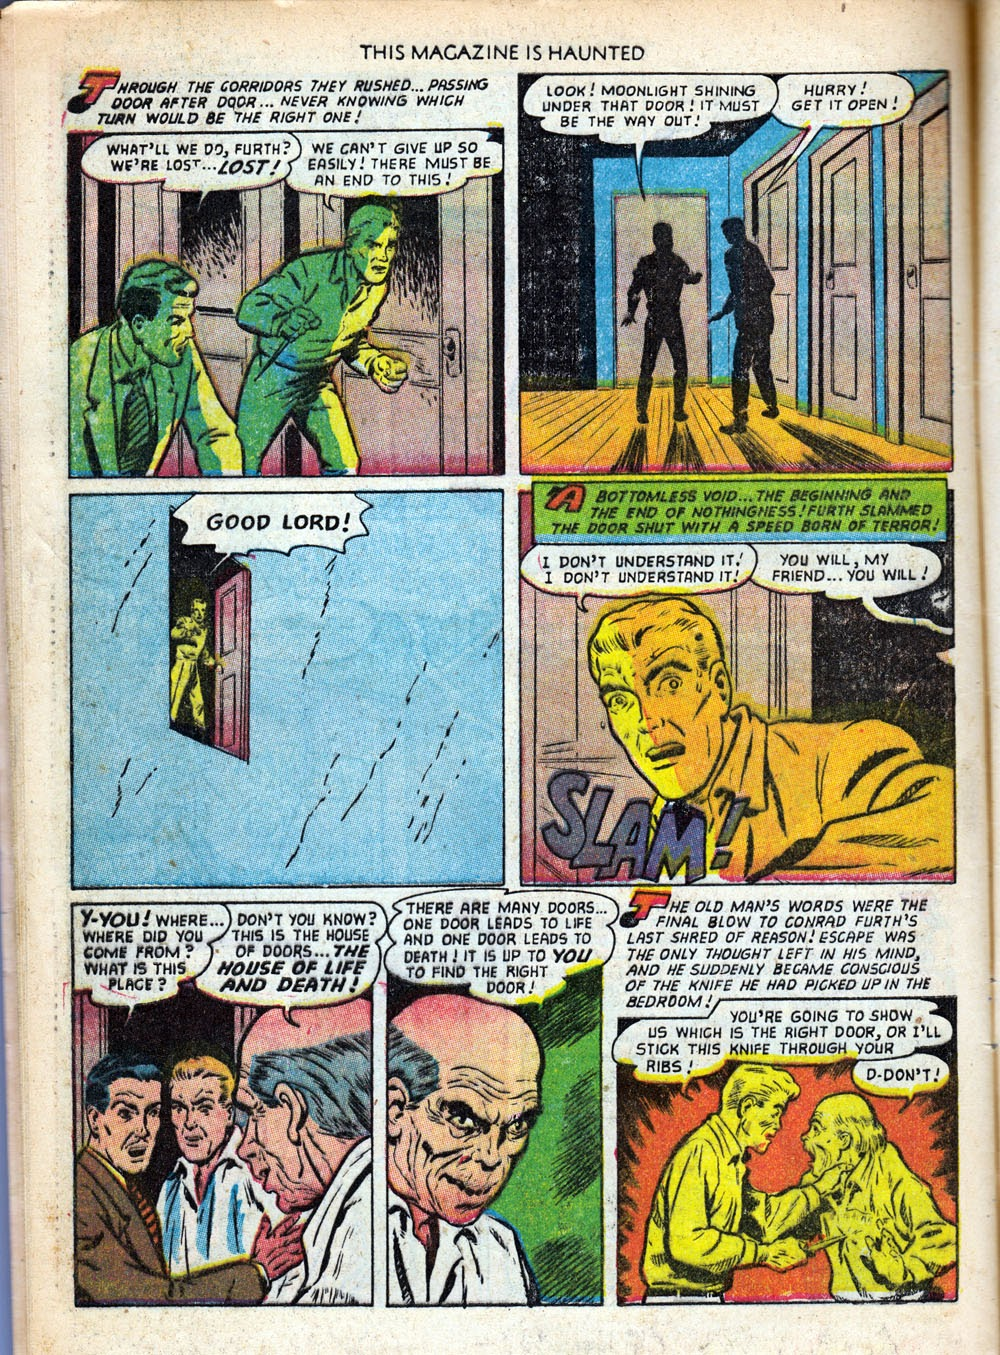 Read online This Magazine Is Haunted comic -  Issue #9 - 32